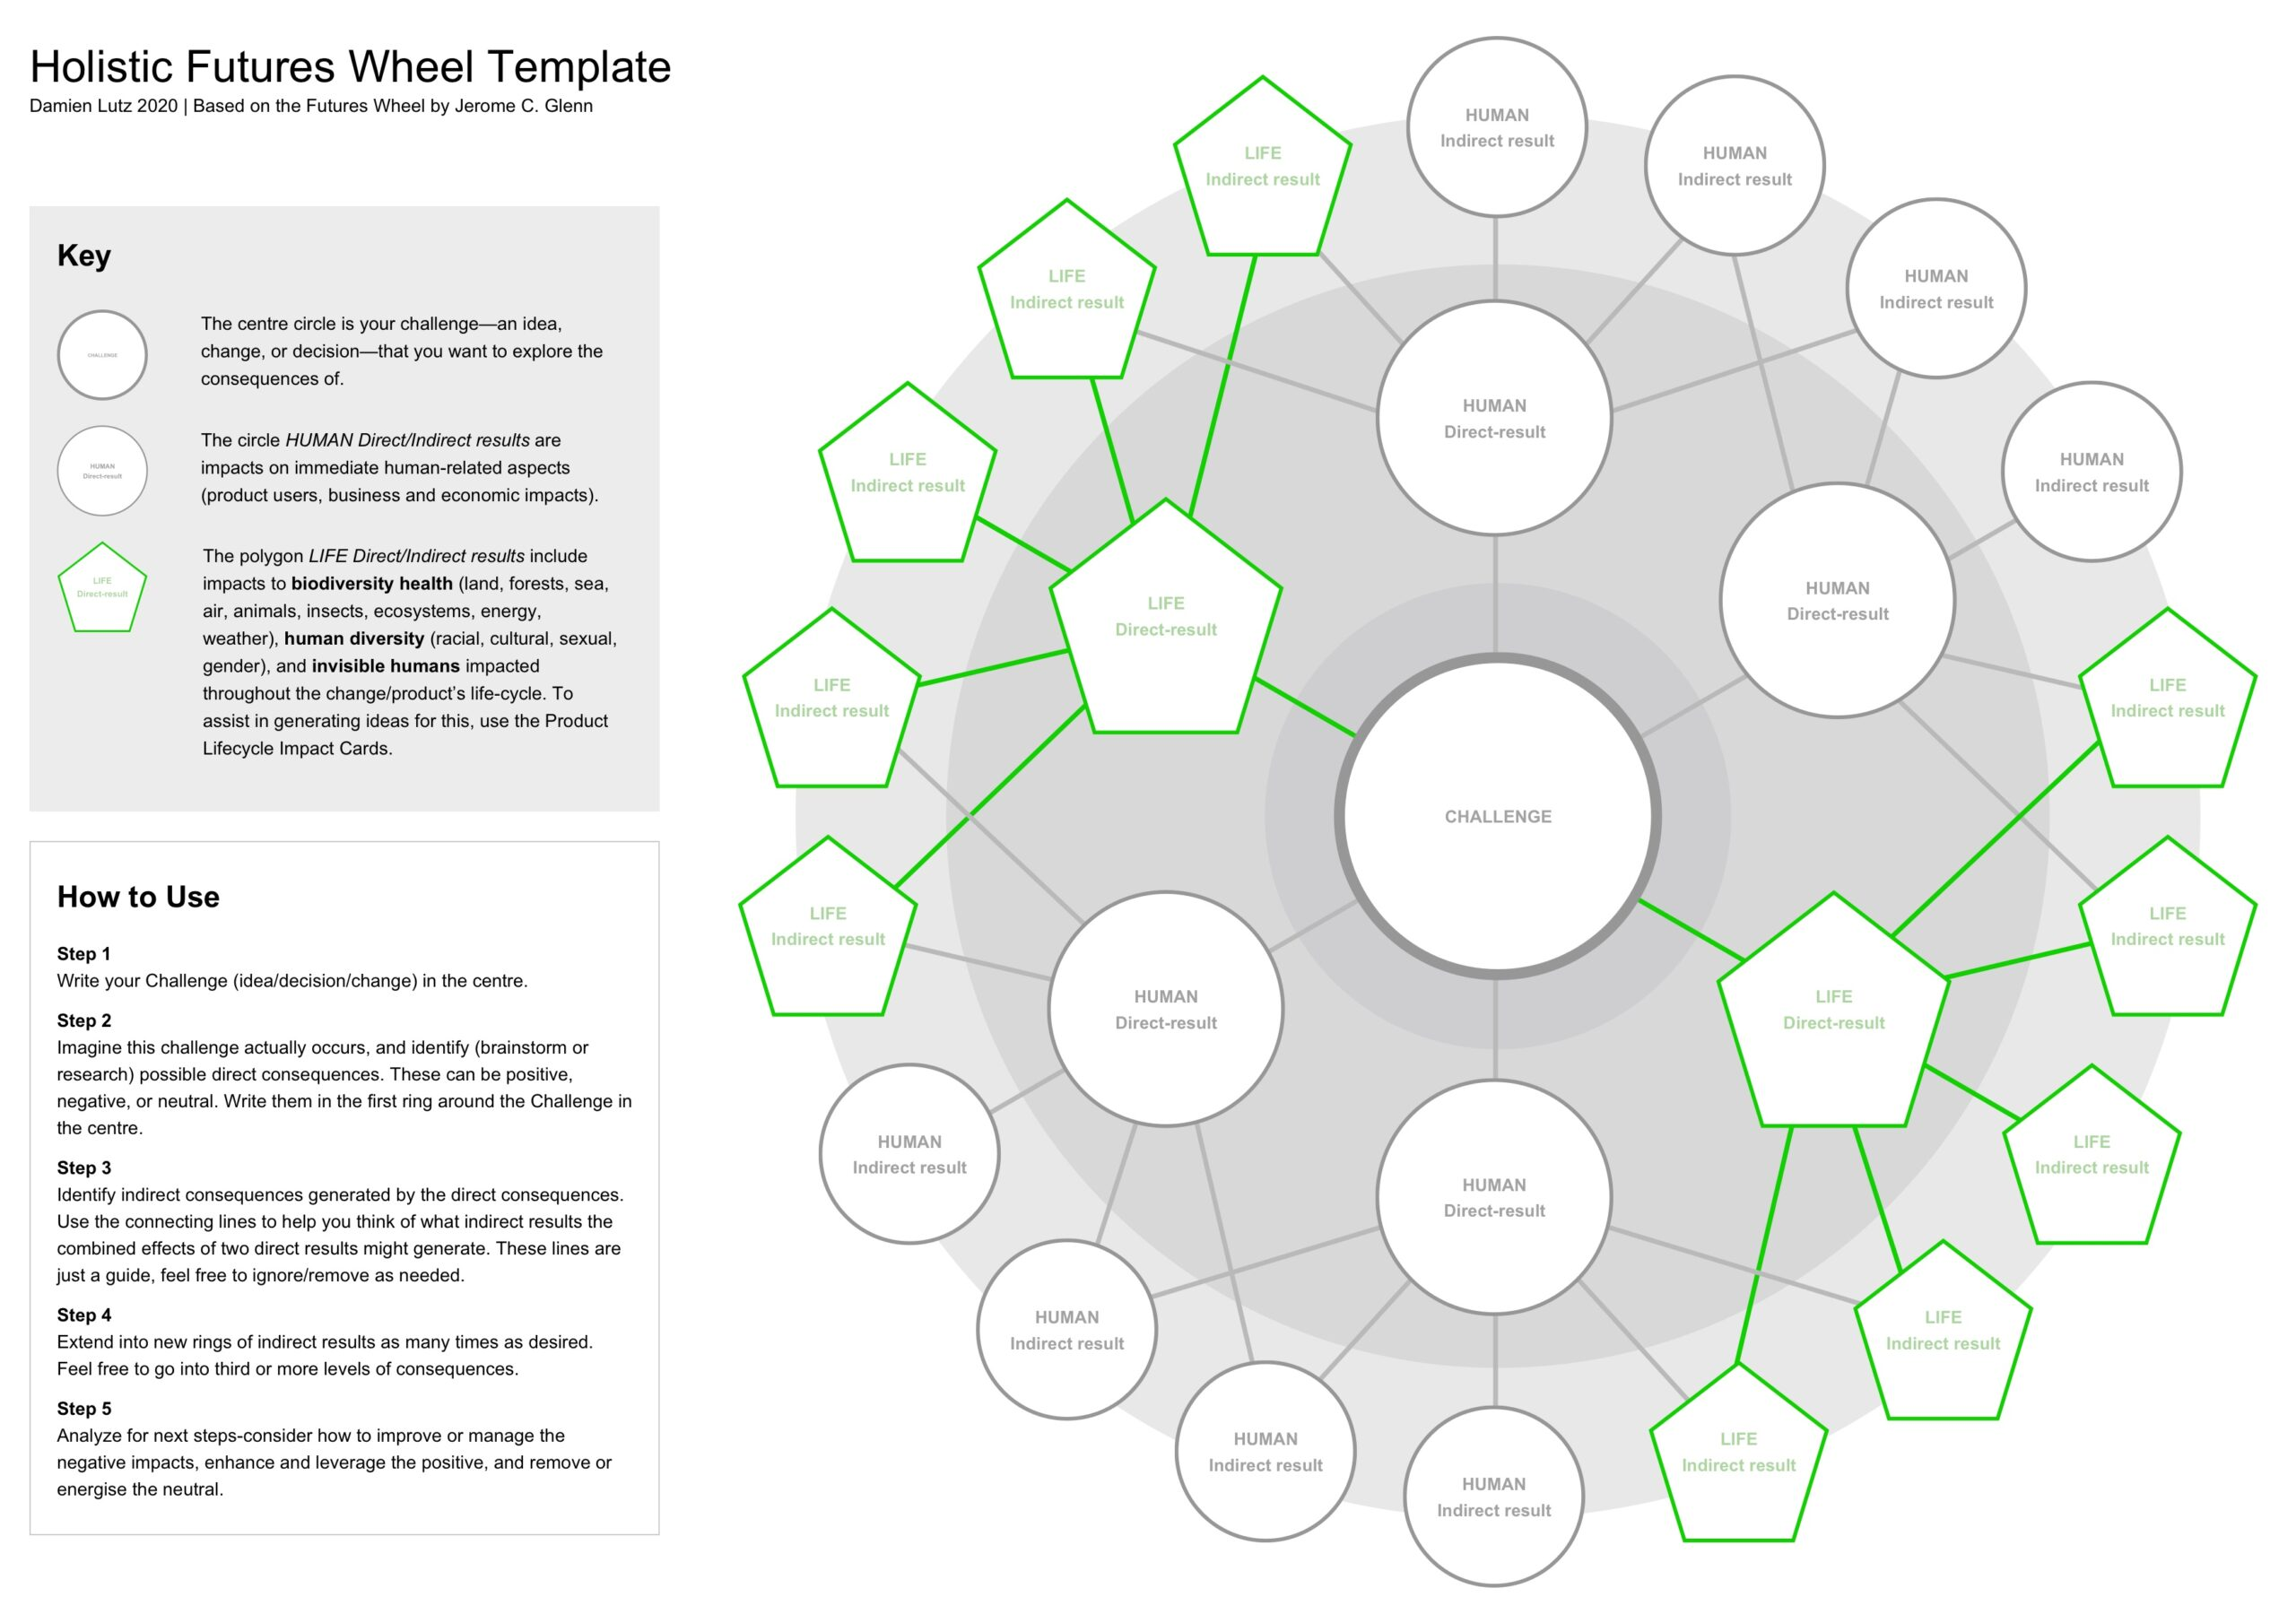 Holistic Futures Wheel thumnbnail image